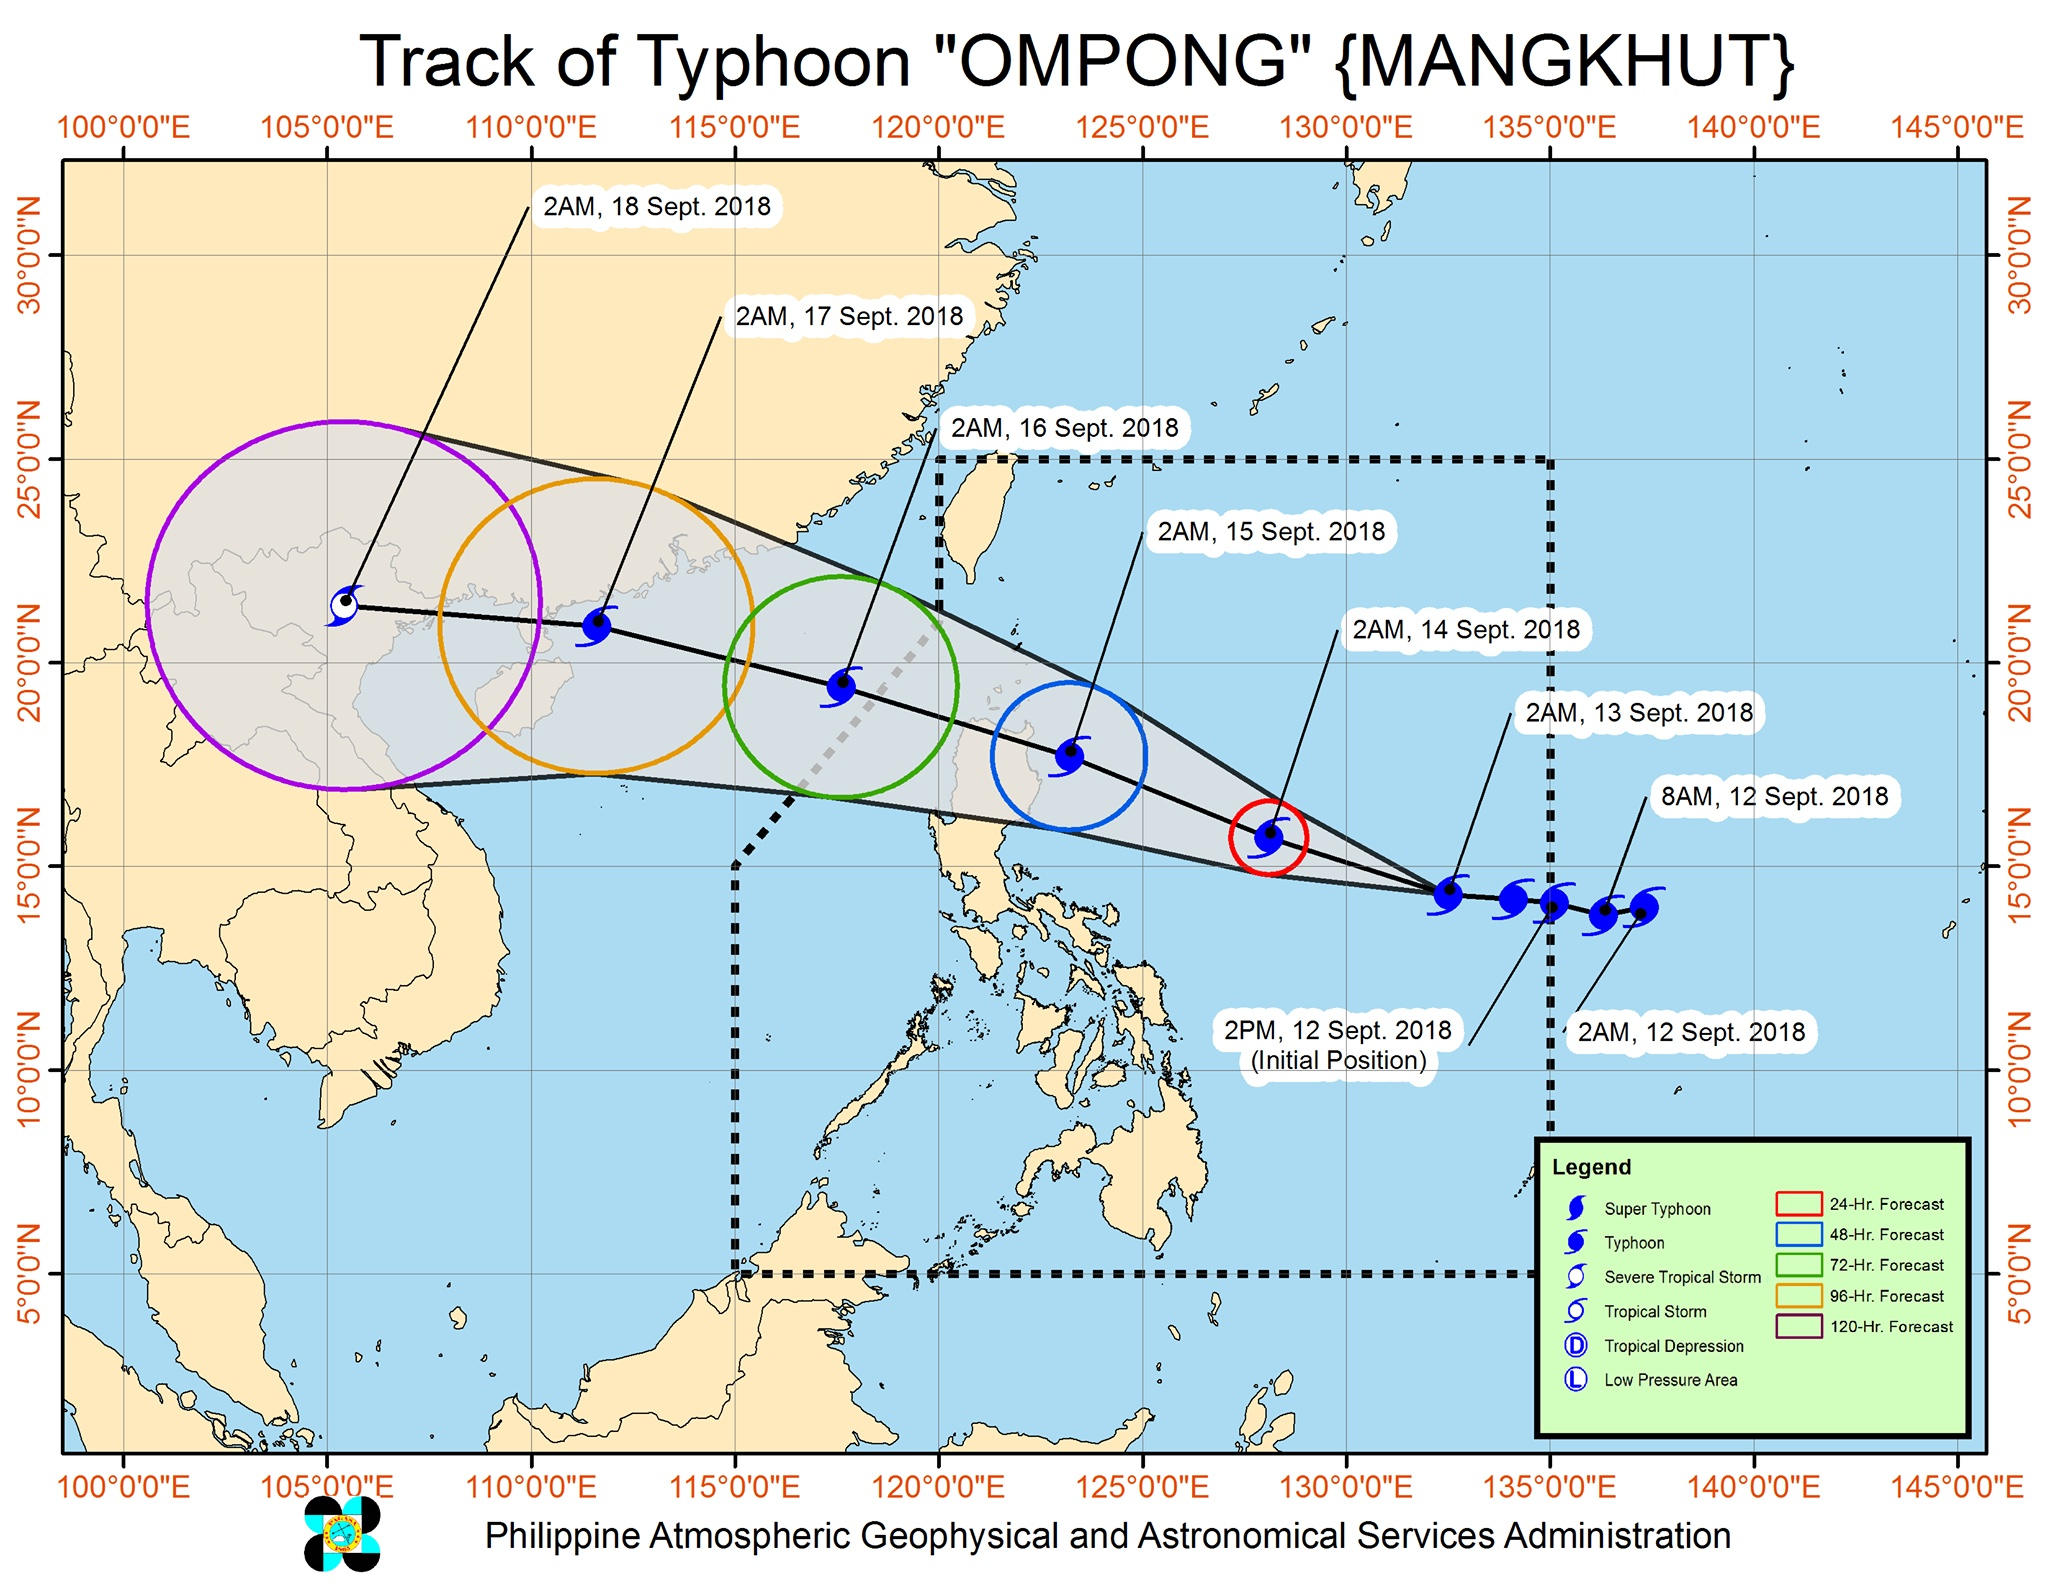 Forecast track of Typhoon Ompong (Mangkhut) as of September 13, 2018, 5 am. Image from PAGASA